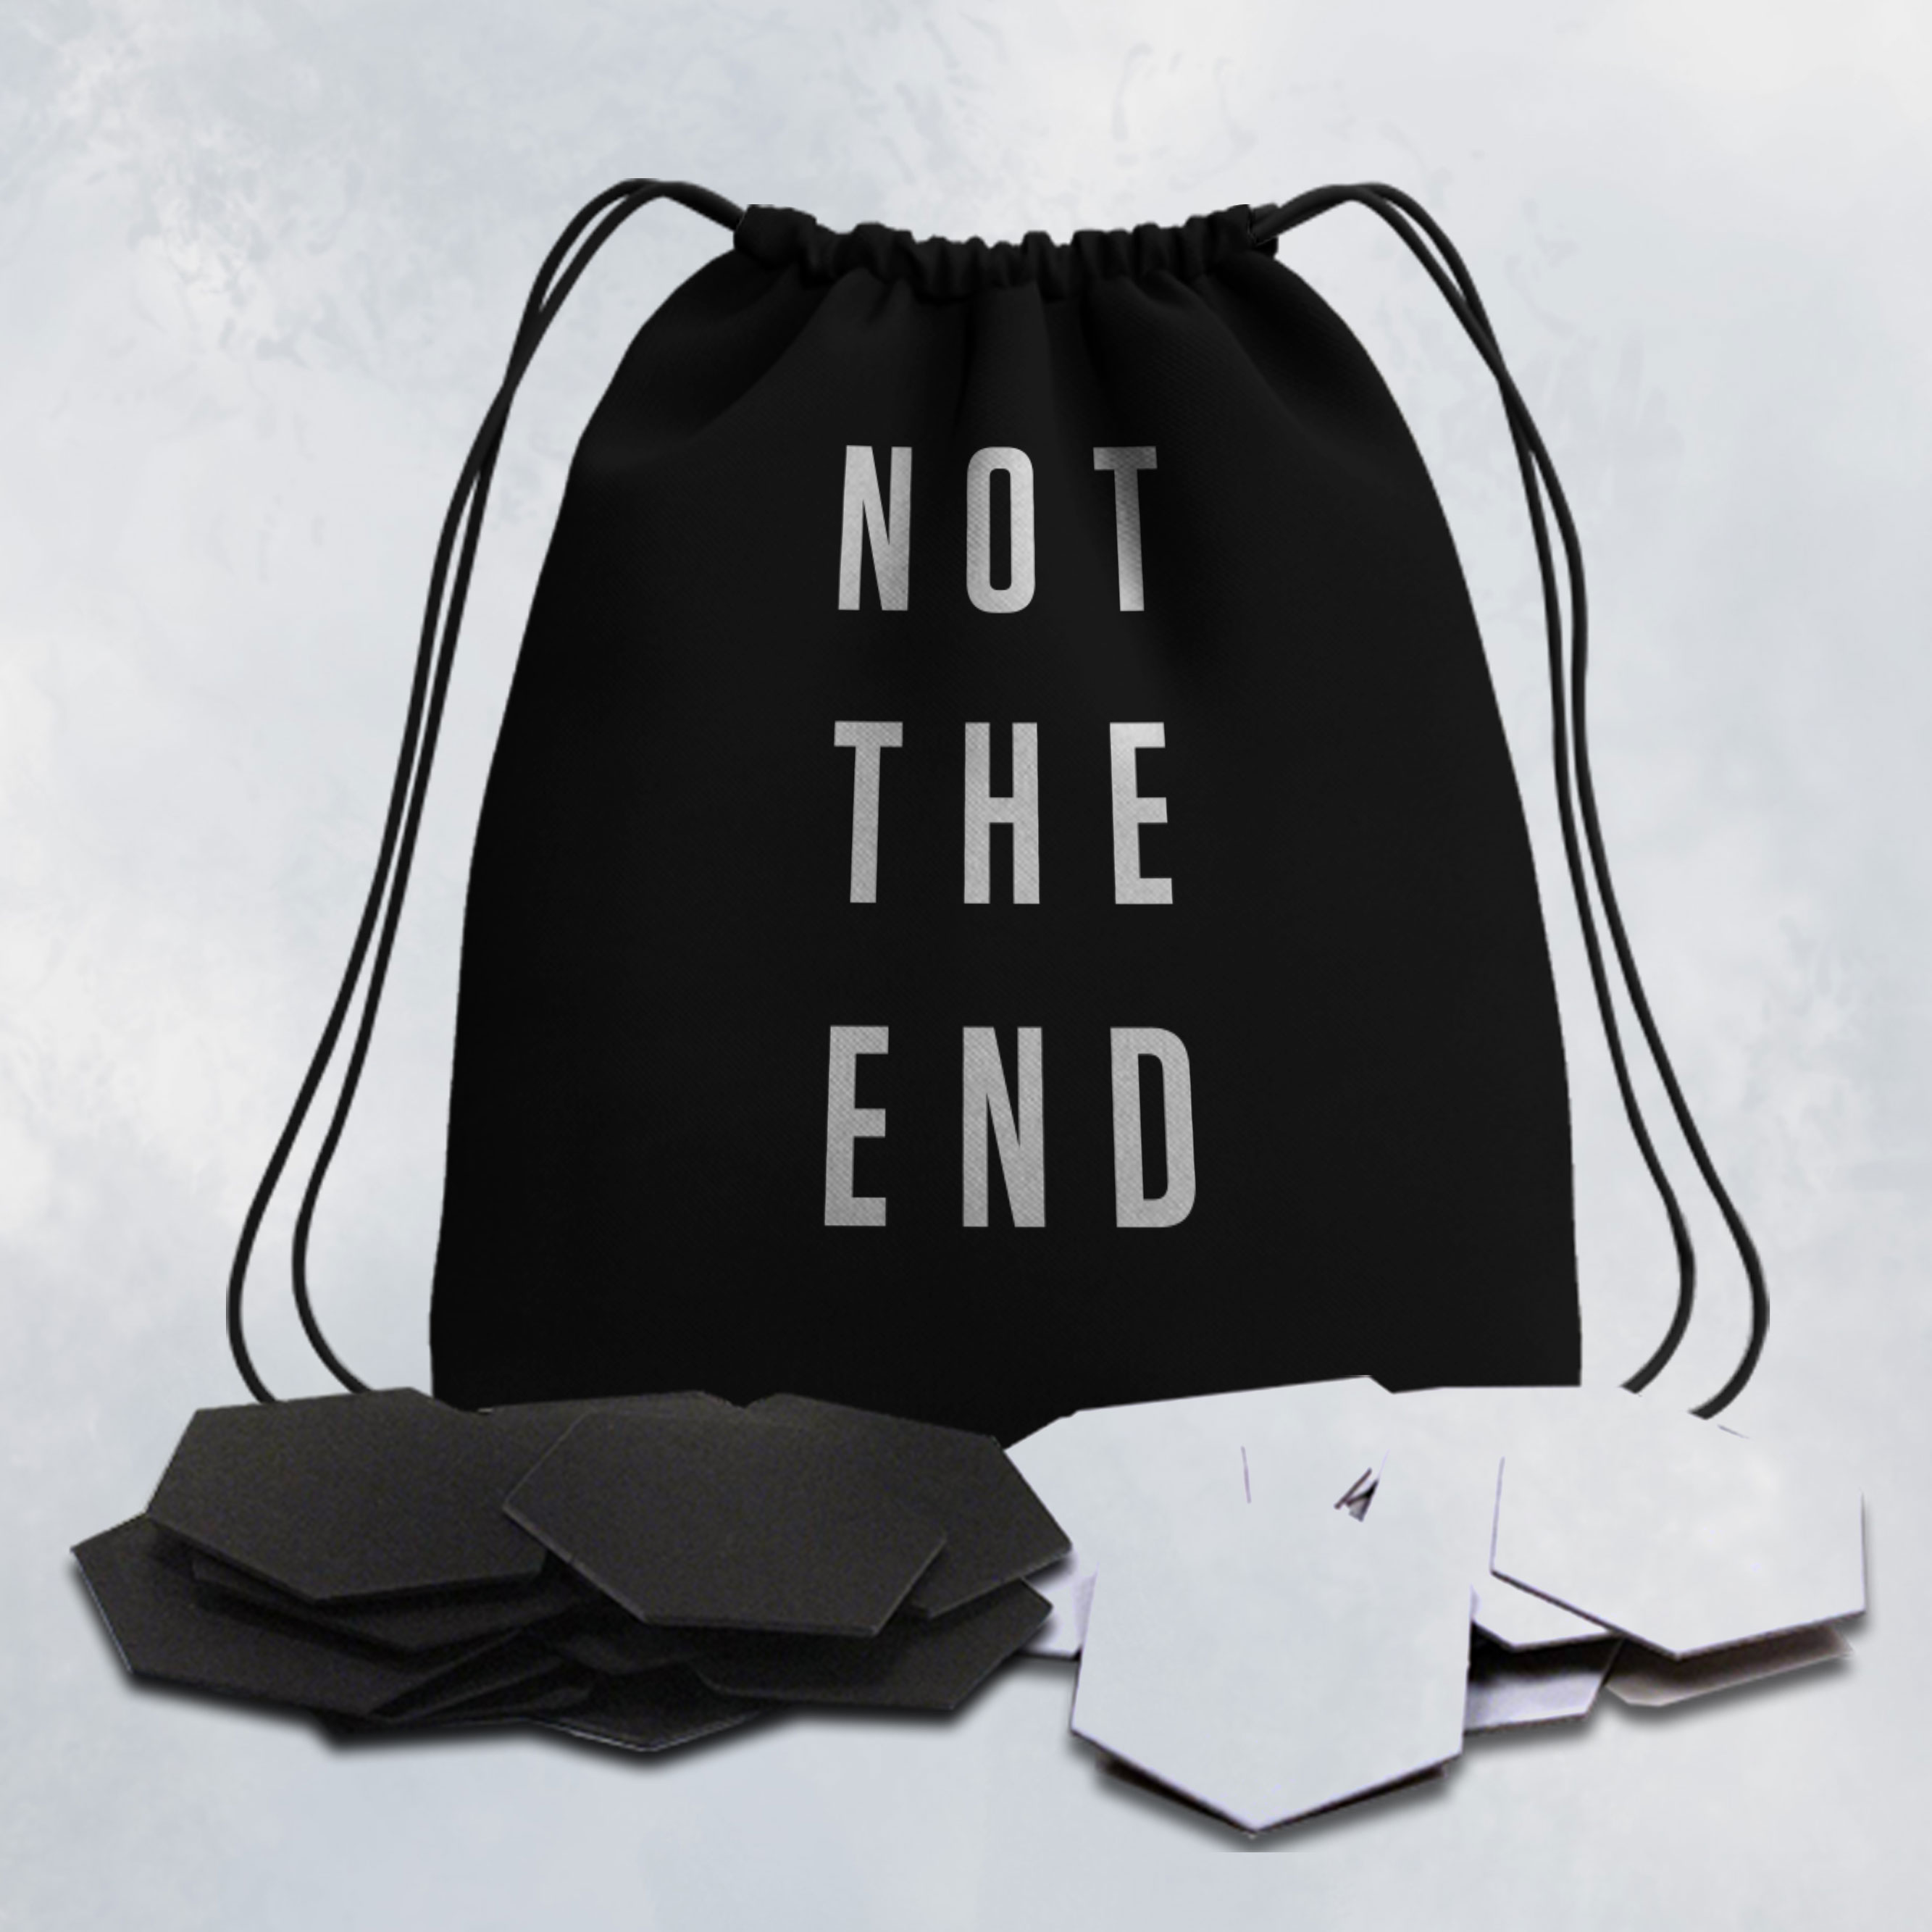 NOT THE END - TOKEN ESAGONALI + SACCHETTO